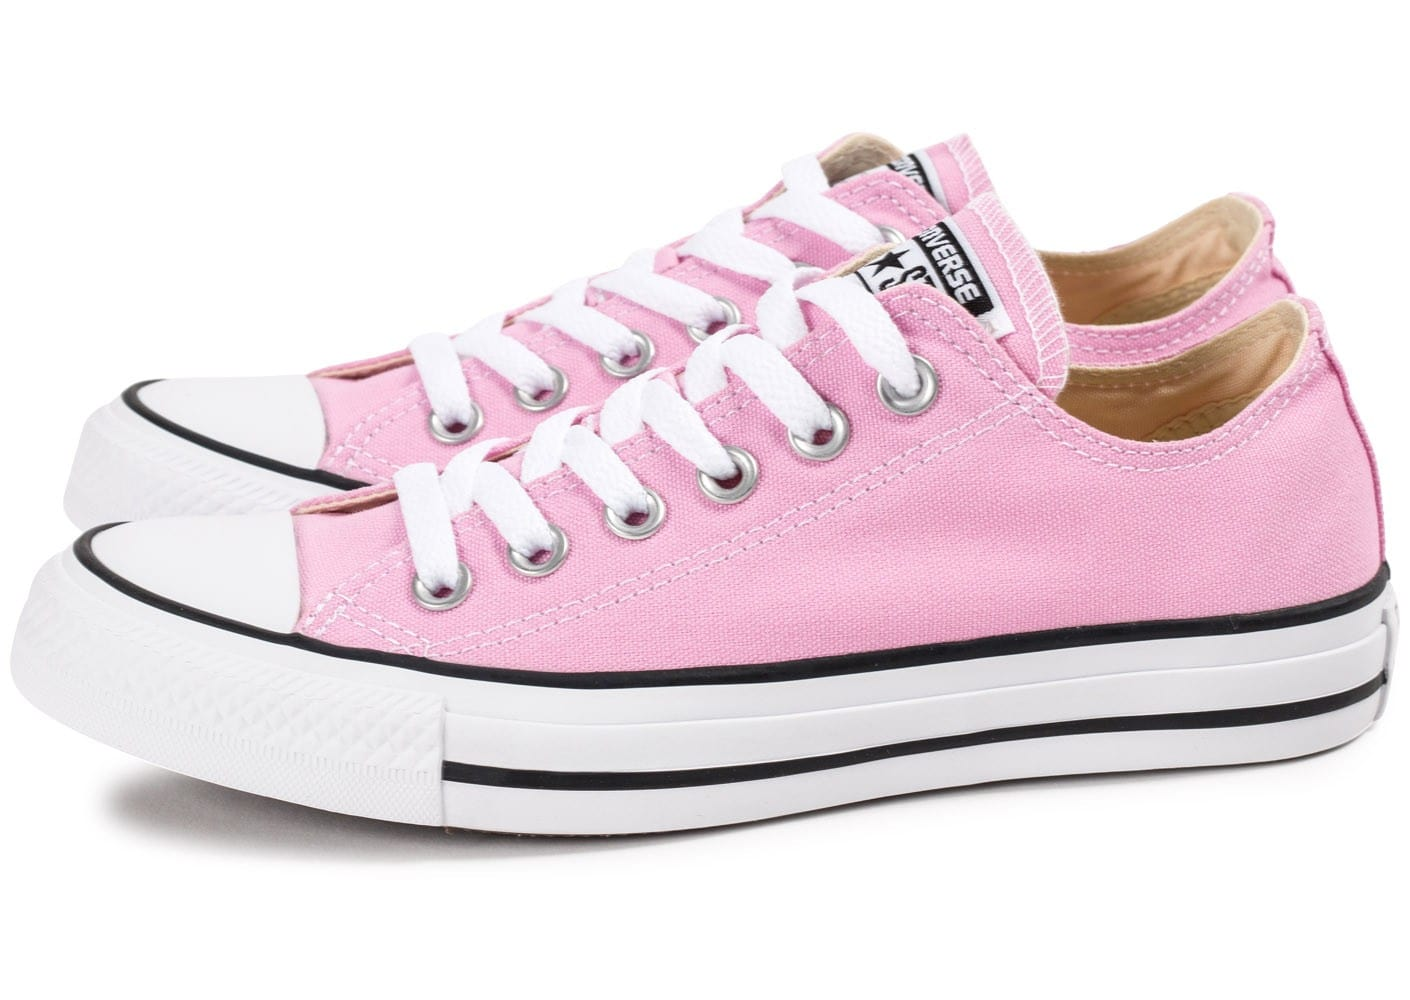 Converse Chuck Taylor All Star low rose - Chaussures Baskets ...